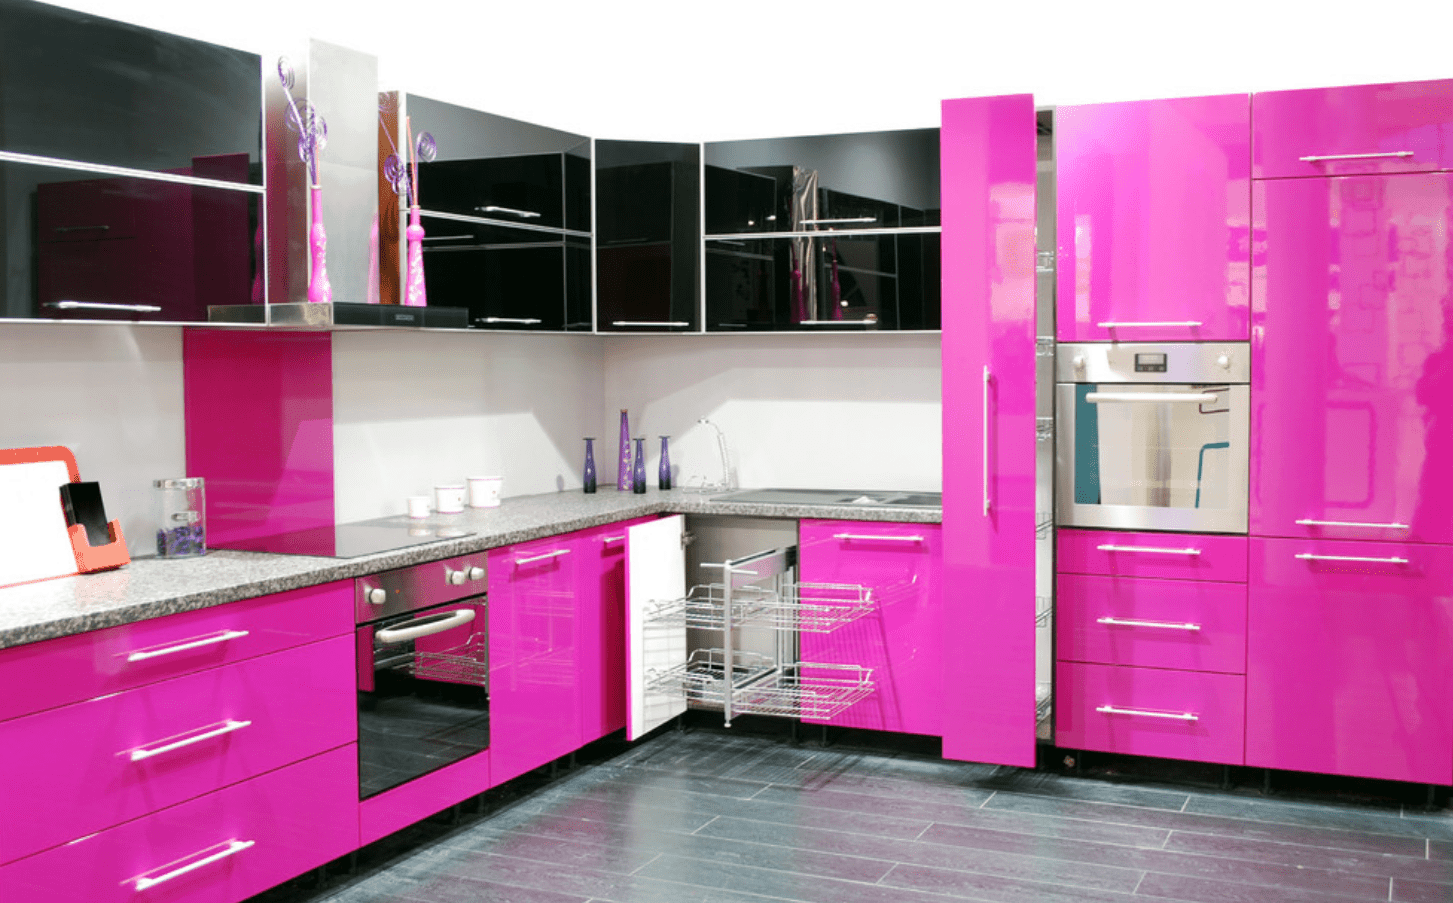 Striking kitchen offers a marble countertop along with black and fuschia pink cabinetry. It has a stainless steel vent hood topped with lovely vases.